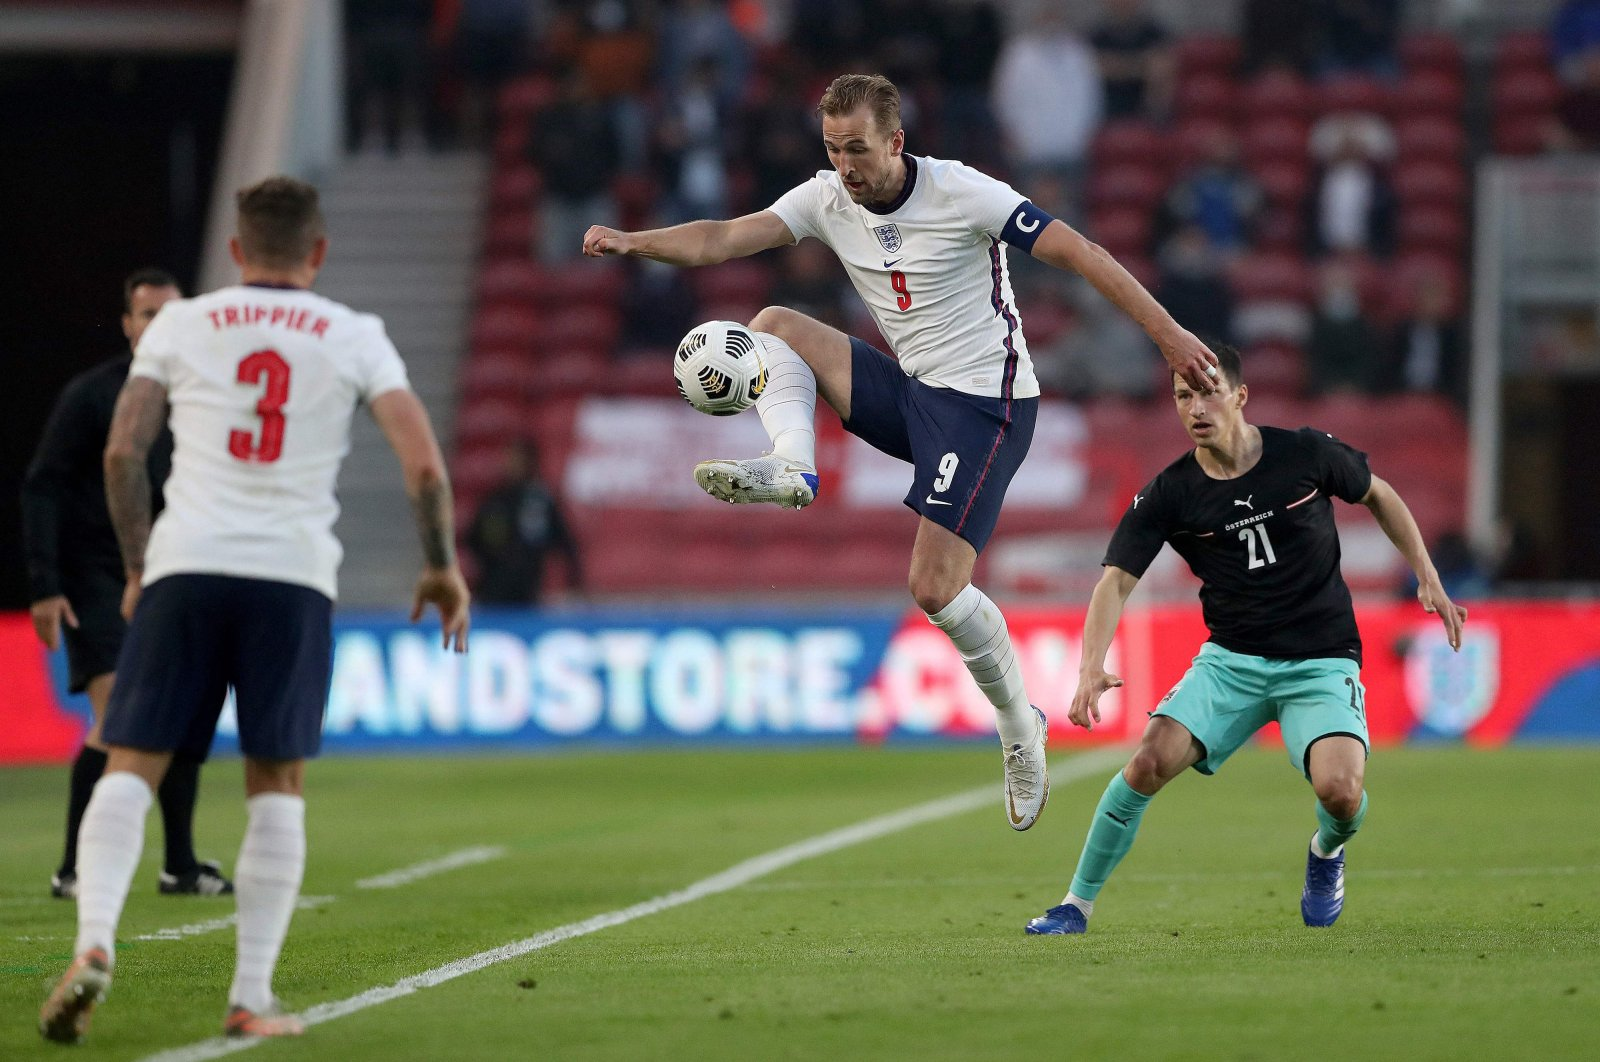 England's striker Harry Kane (C) controls the ball during a friendly match against Austria at the Riverside Stadium in Middlesbrough, England, June 2, 2021. (AFP Photo)